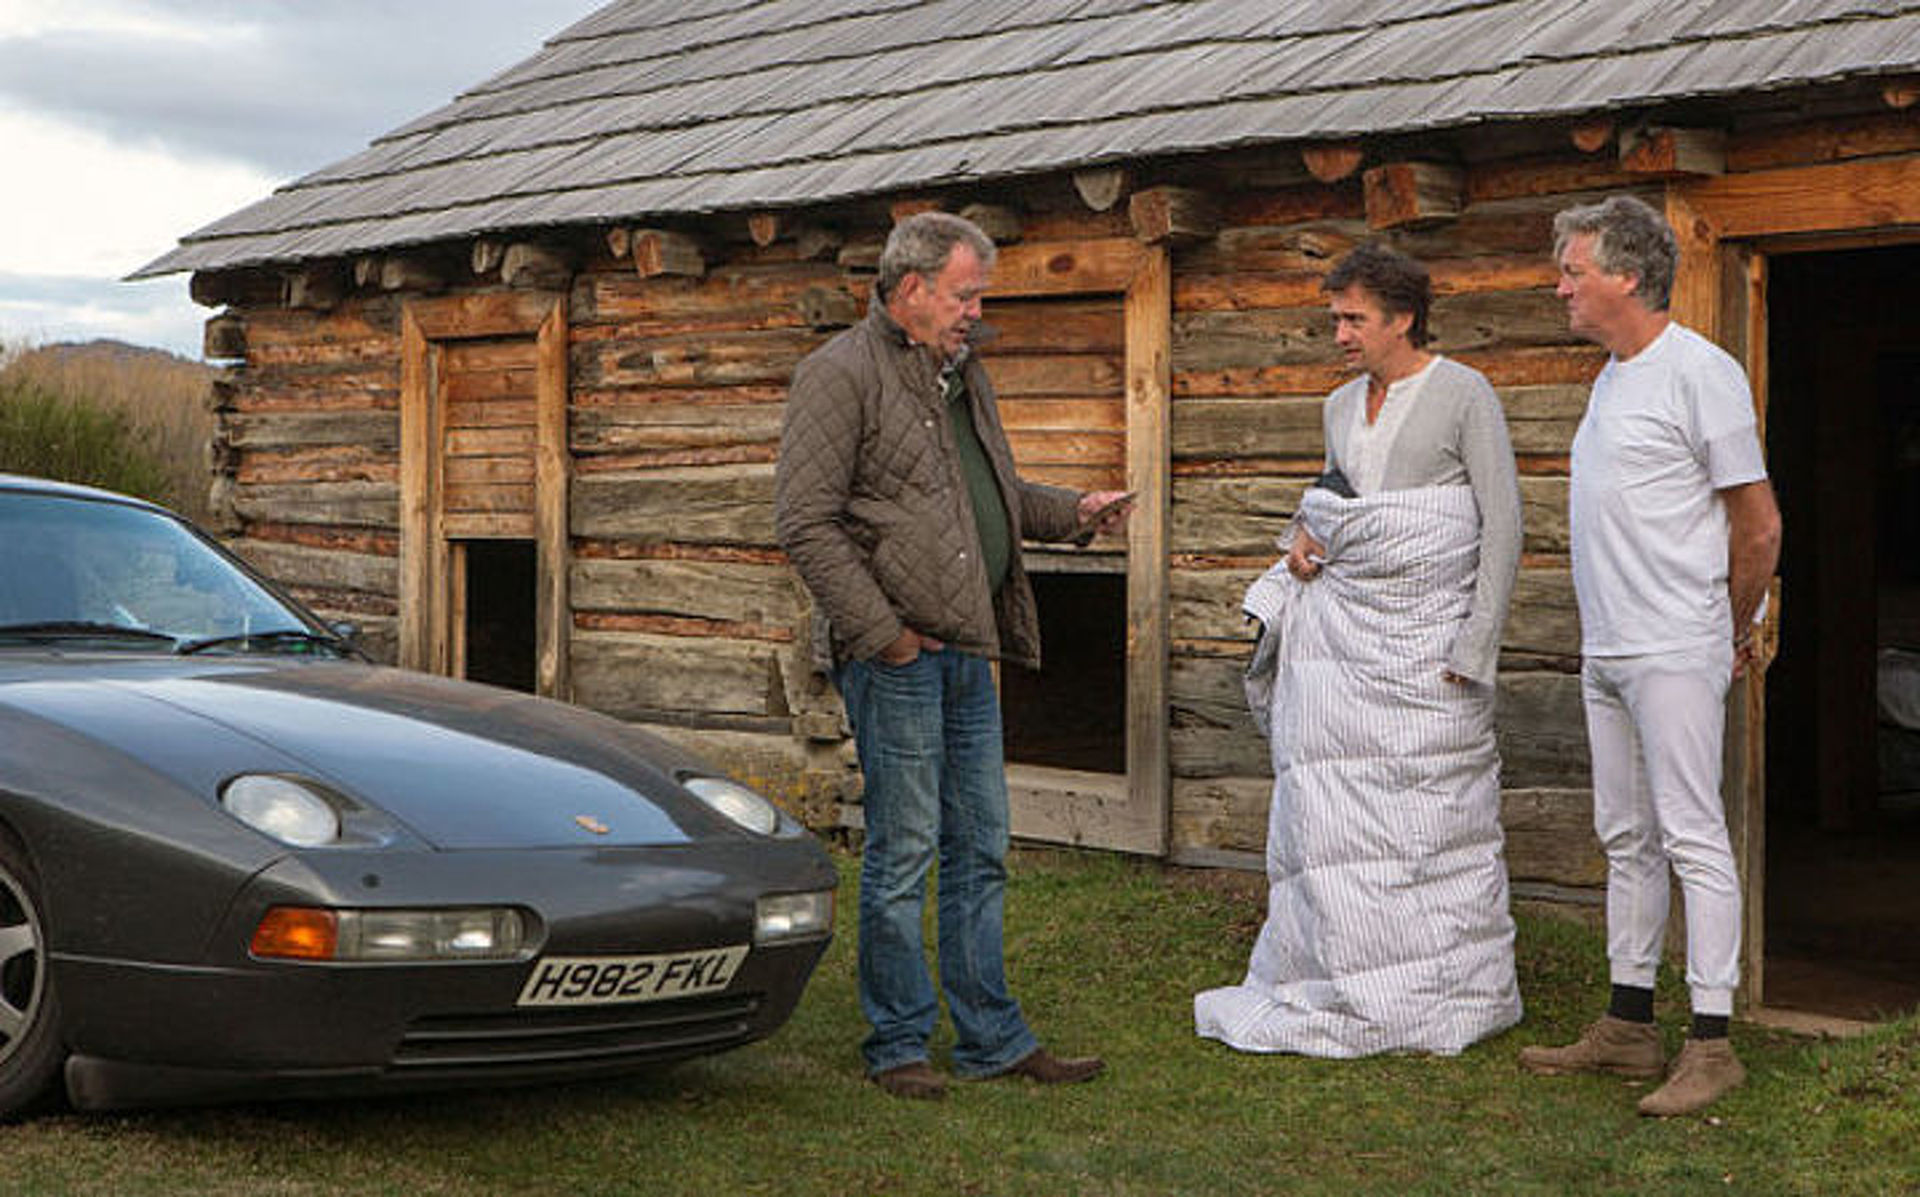 Jeremy Clarkson Could Face 3 Years in Prison over Argentina Fiasco